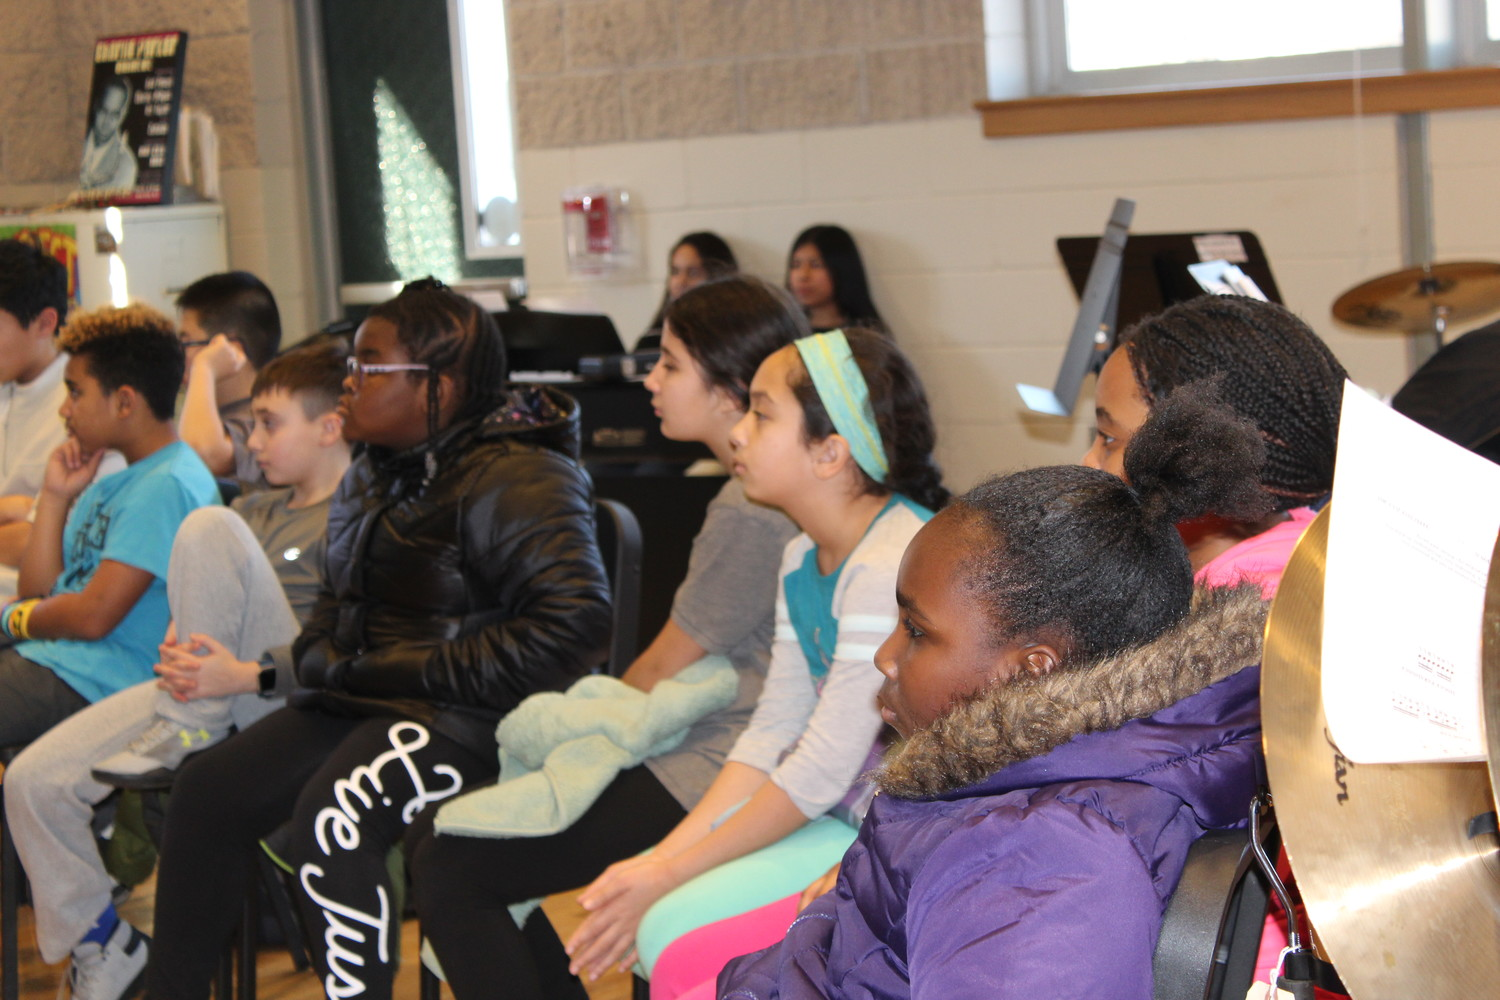 Nine students from the No Place for Hate Committee at West End Elementary School attended a discussion.